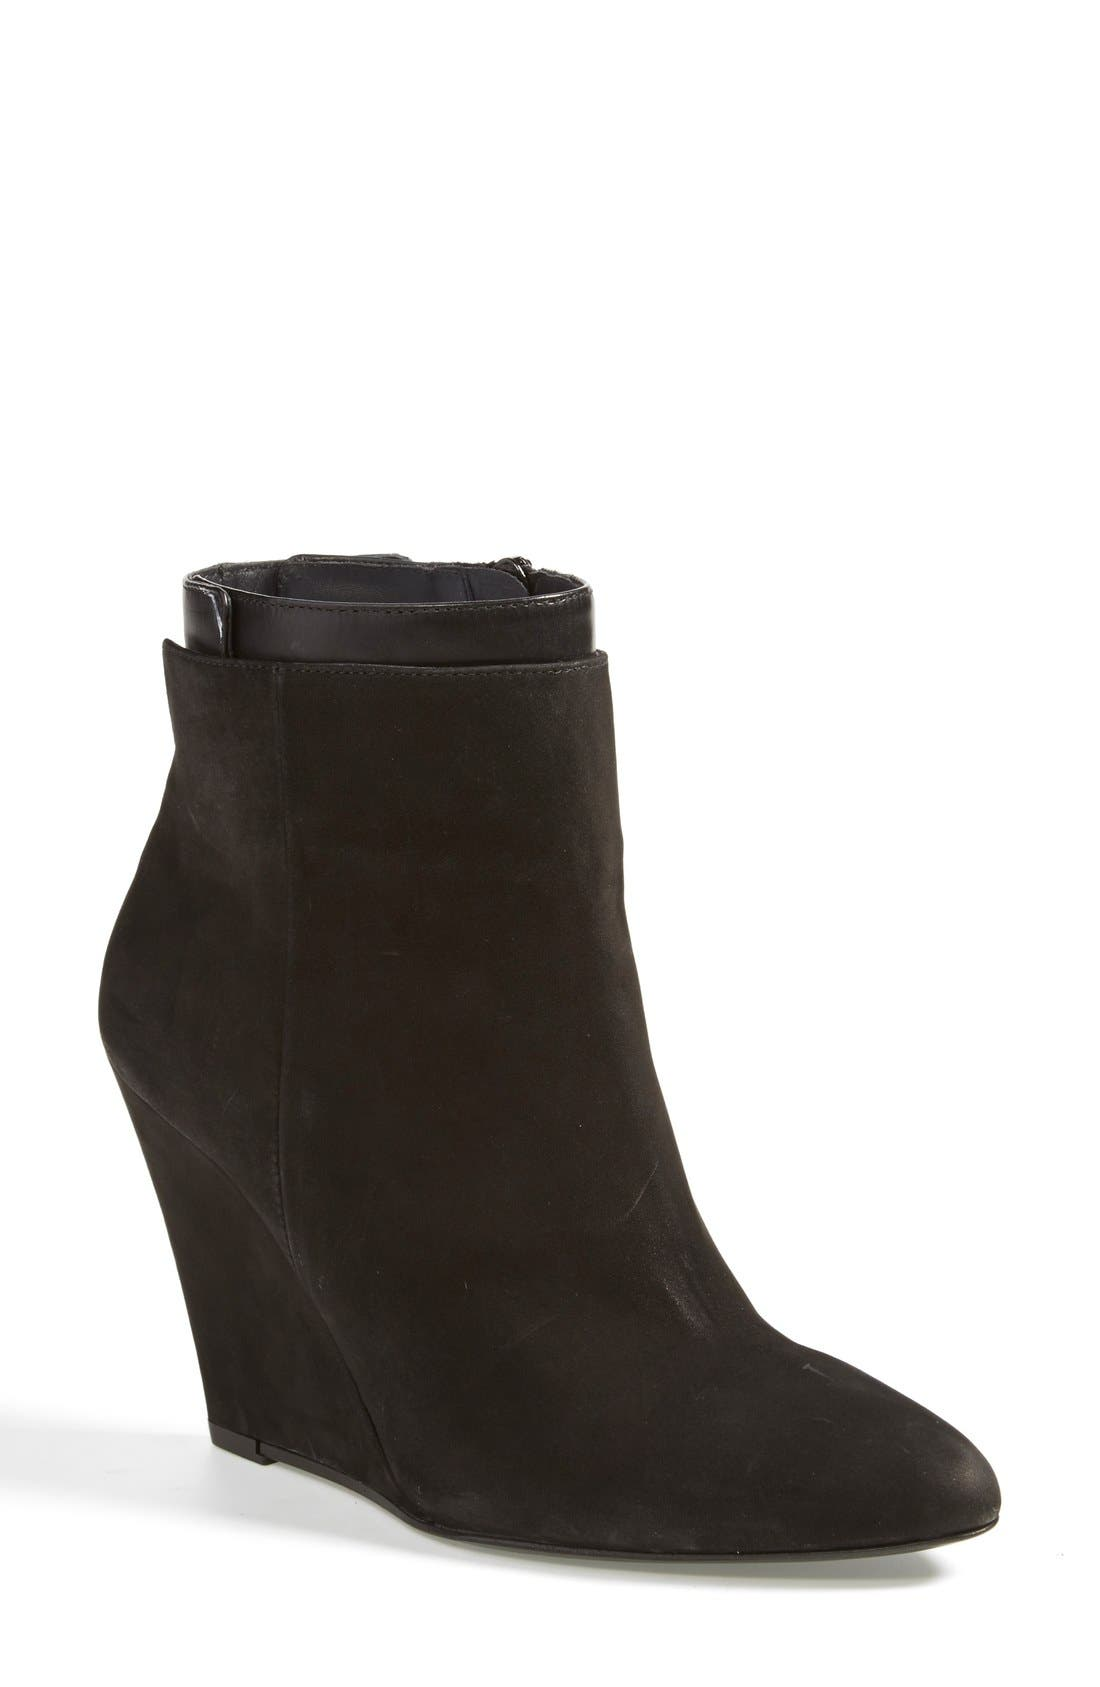 Main Image - Vince 'Ludlow' Leather Wedge Bootie (Women)